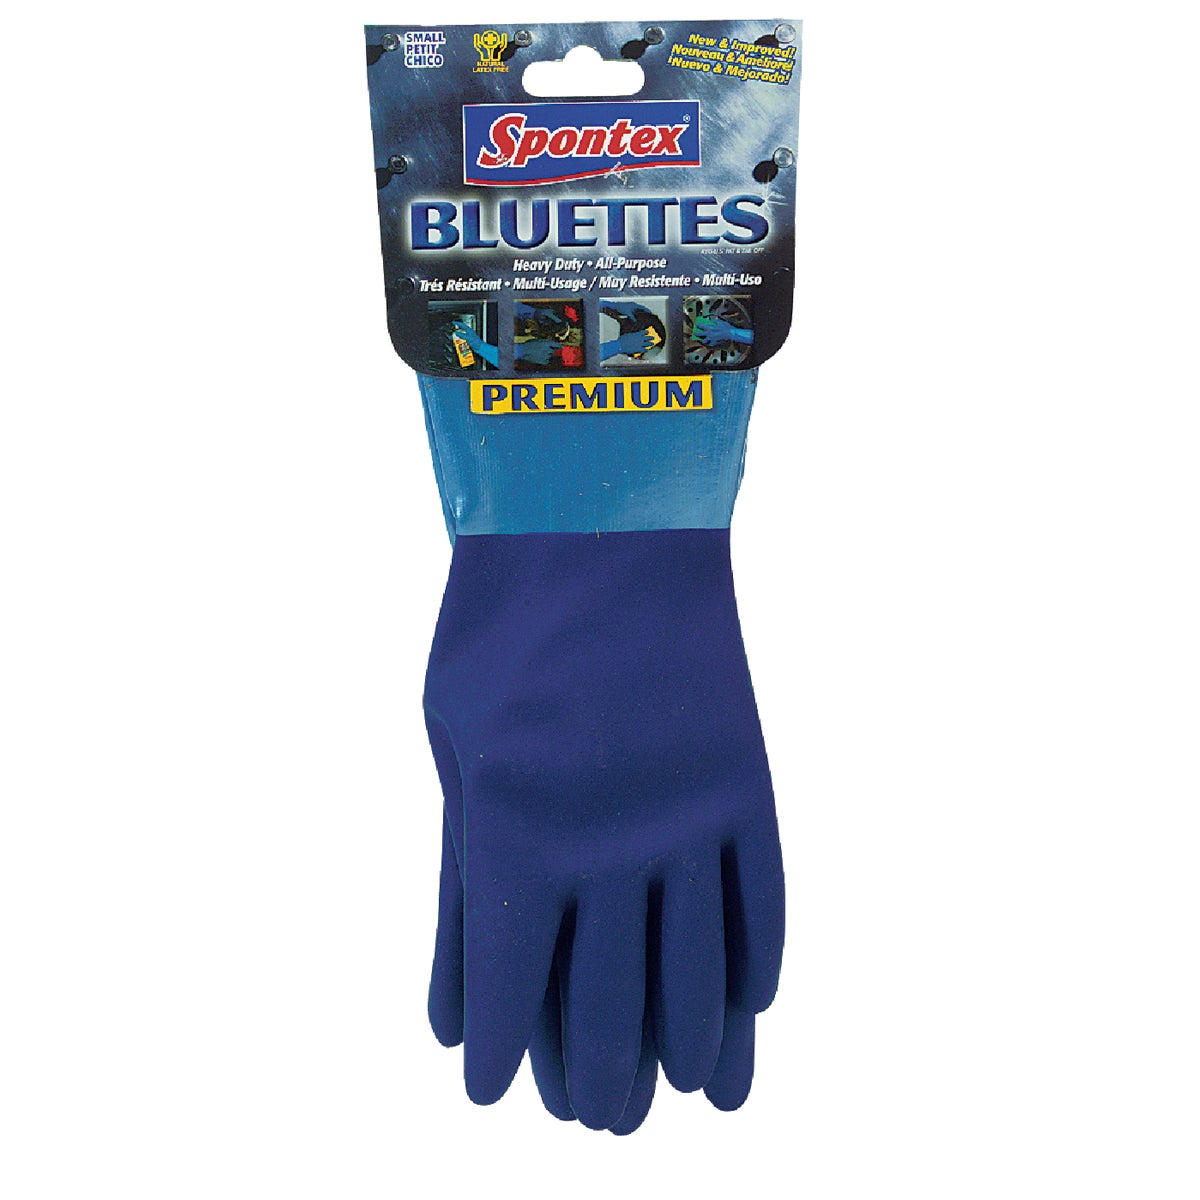 MEDIUM RUBBER GLOVES - 18005 by Lehigh Spontex